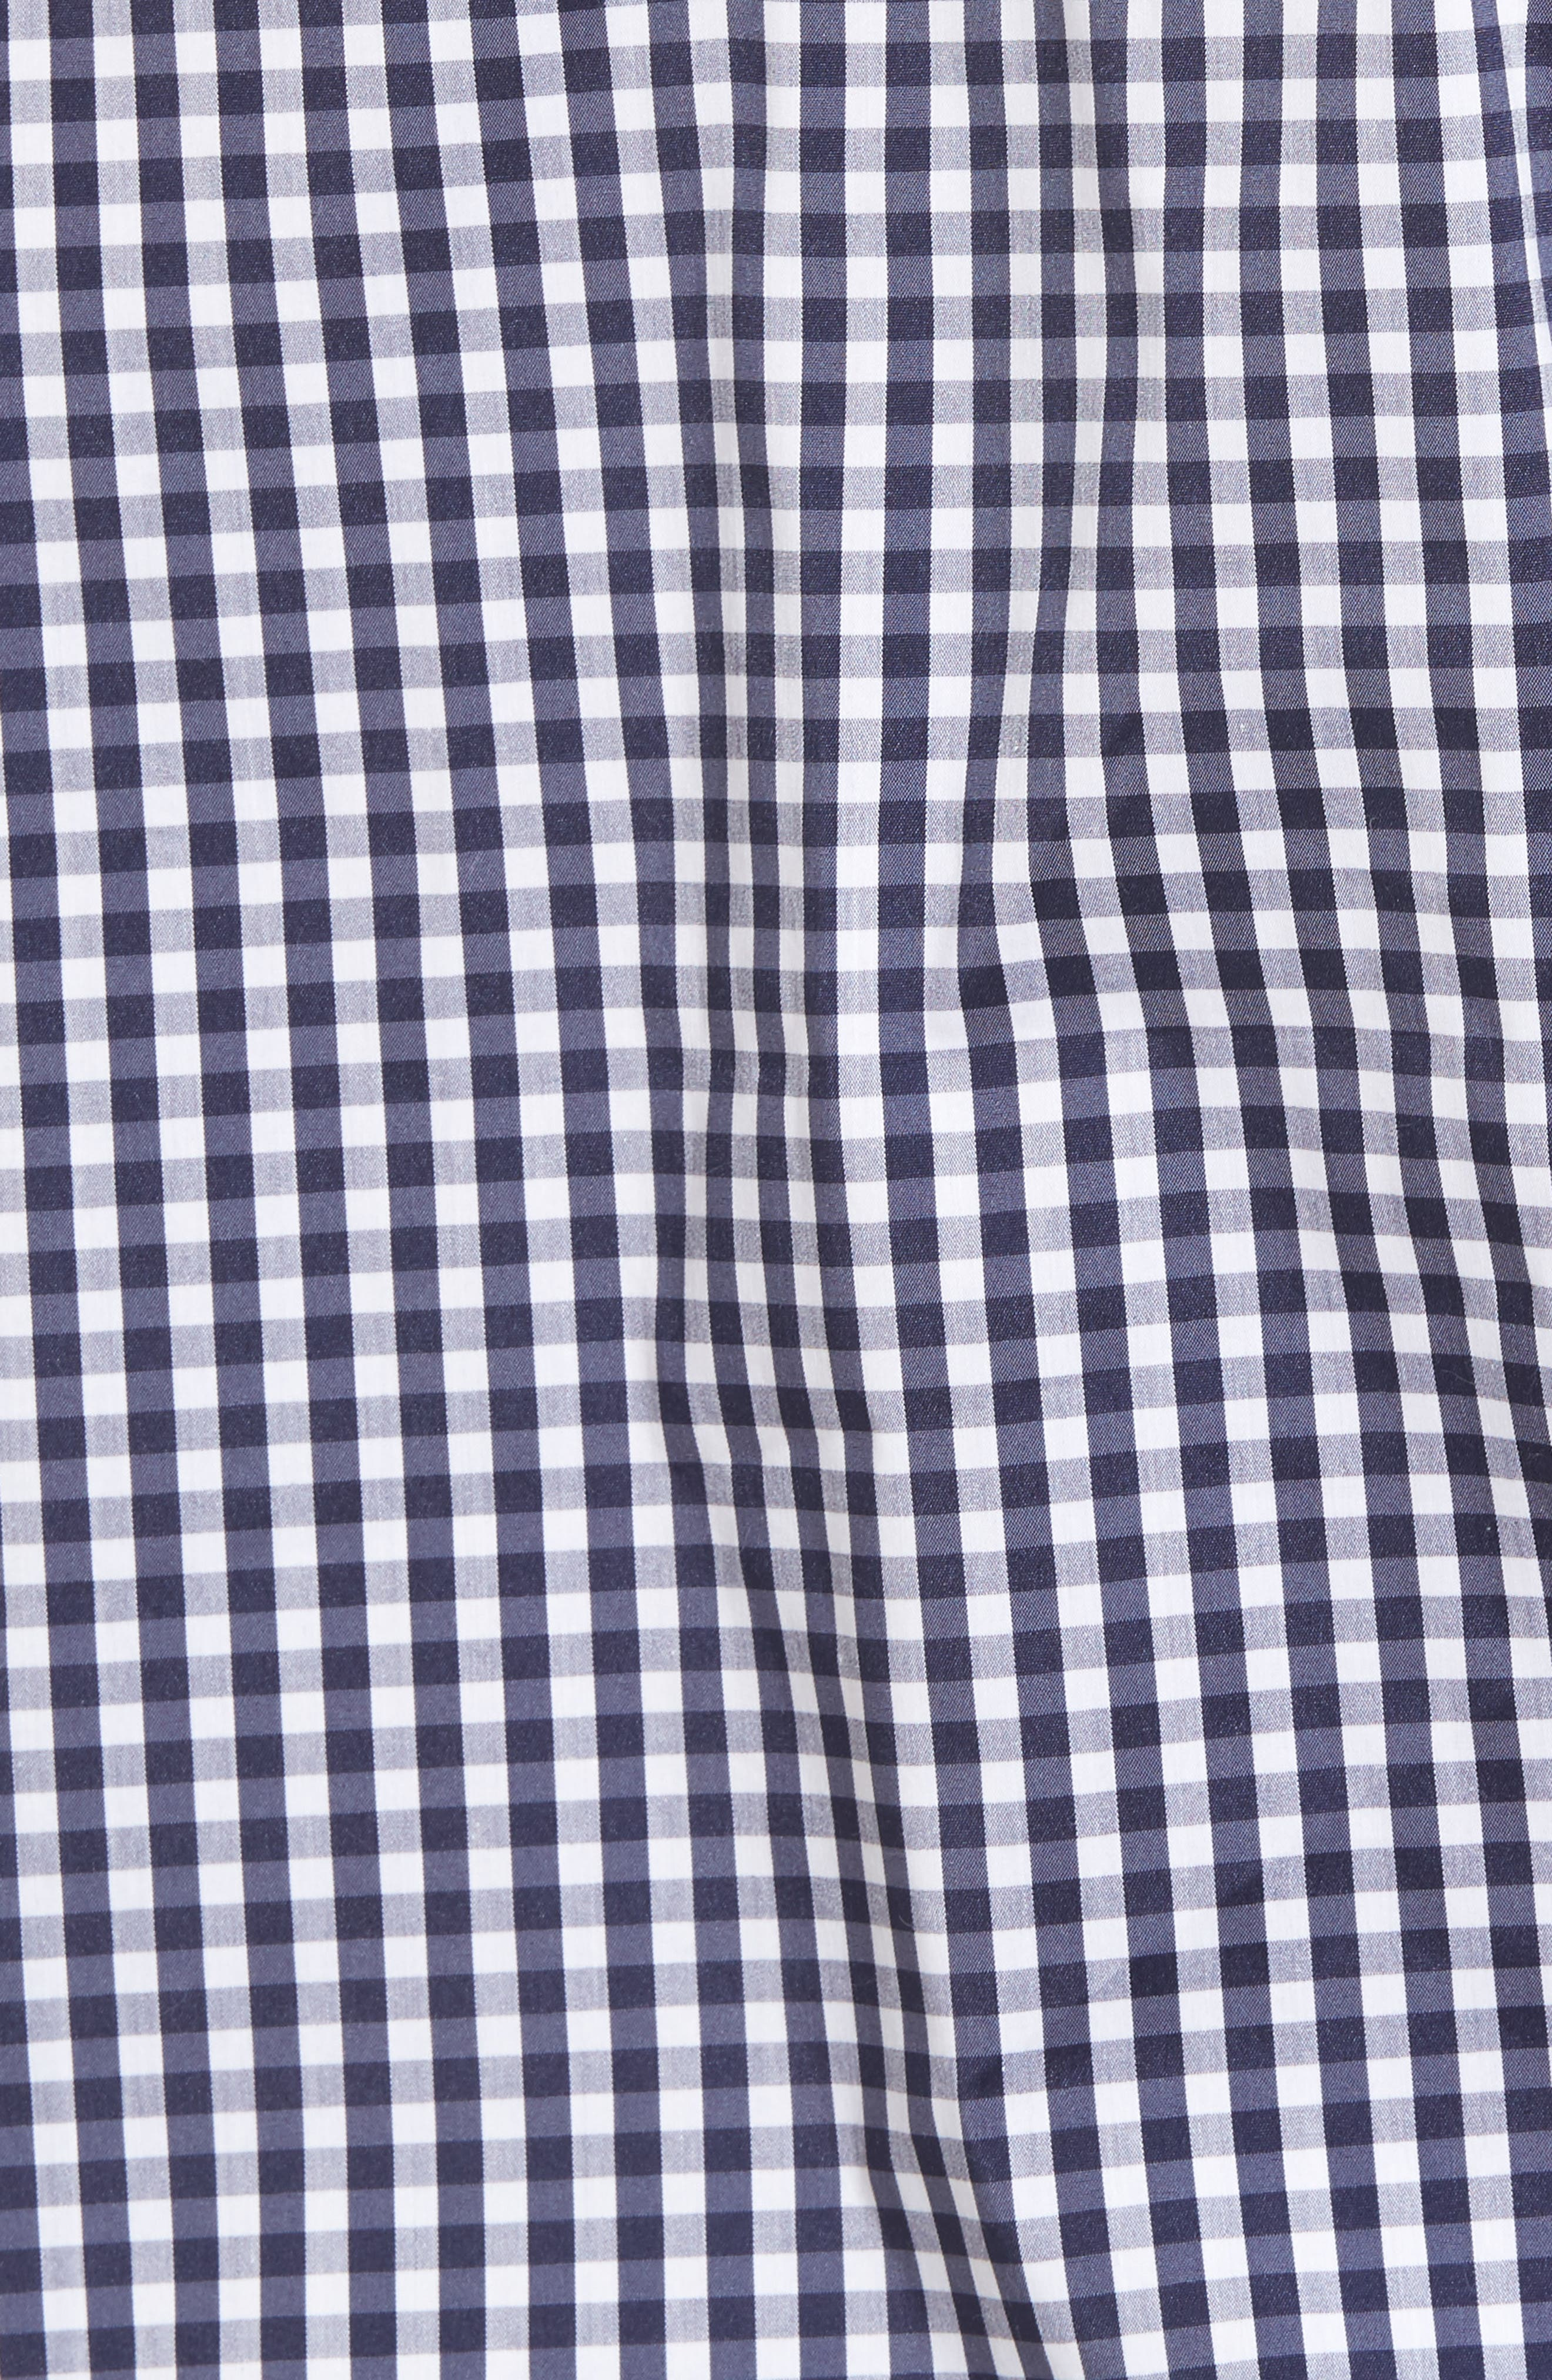 Gingham & Lace Blouse,                             Alternate thumbnail 5, color,                             Navy Evening- White Gingham